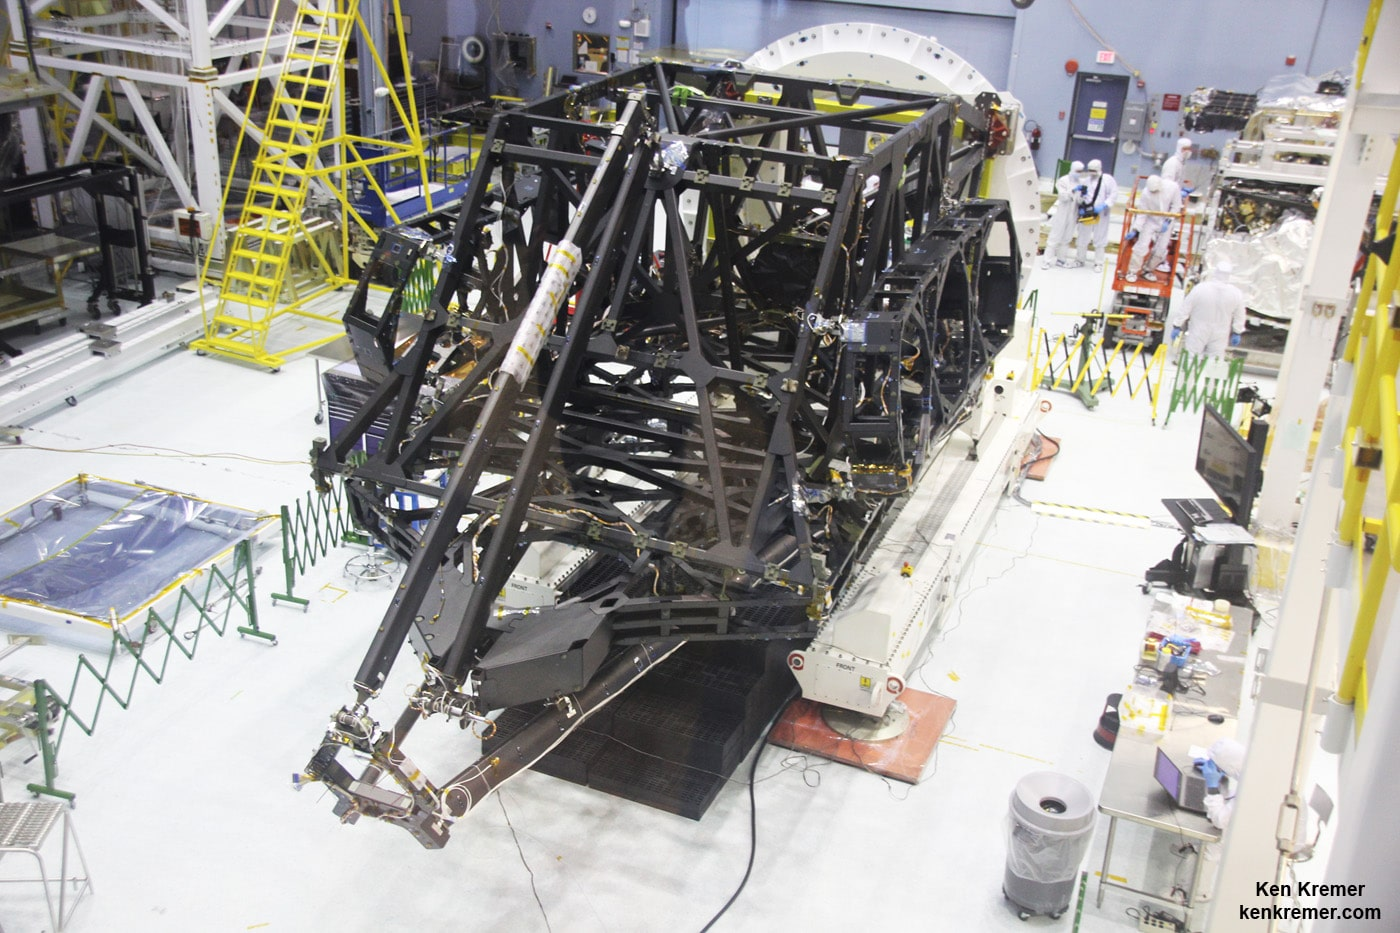 View showing actual flight structure of mirror backplane unit for NASA's James Webb Space Telescope (JWST) that holds 18 segment primary mirror array and secondary mirror mount at front, in stowed-for-launch configuration. JWST is being assembled here by technicians inside the world's largest cleanroom at NASA Goddard Space Flight Center, Greenbelt, Md. Credit: Ken Kremer/kenkremer.com